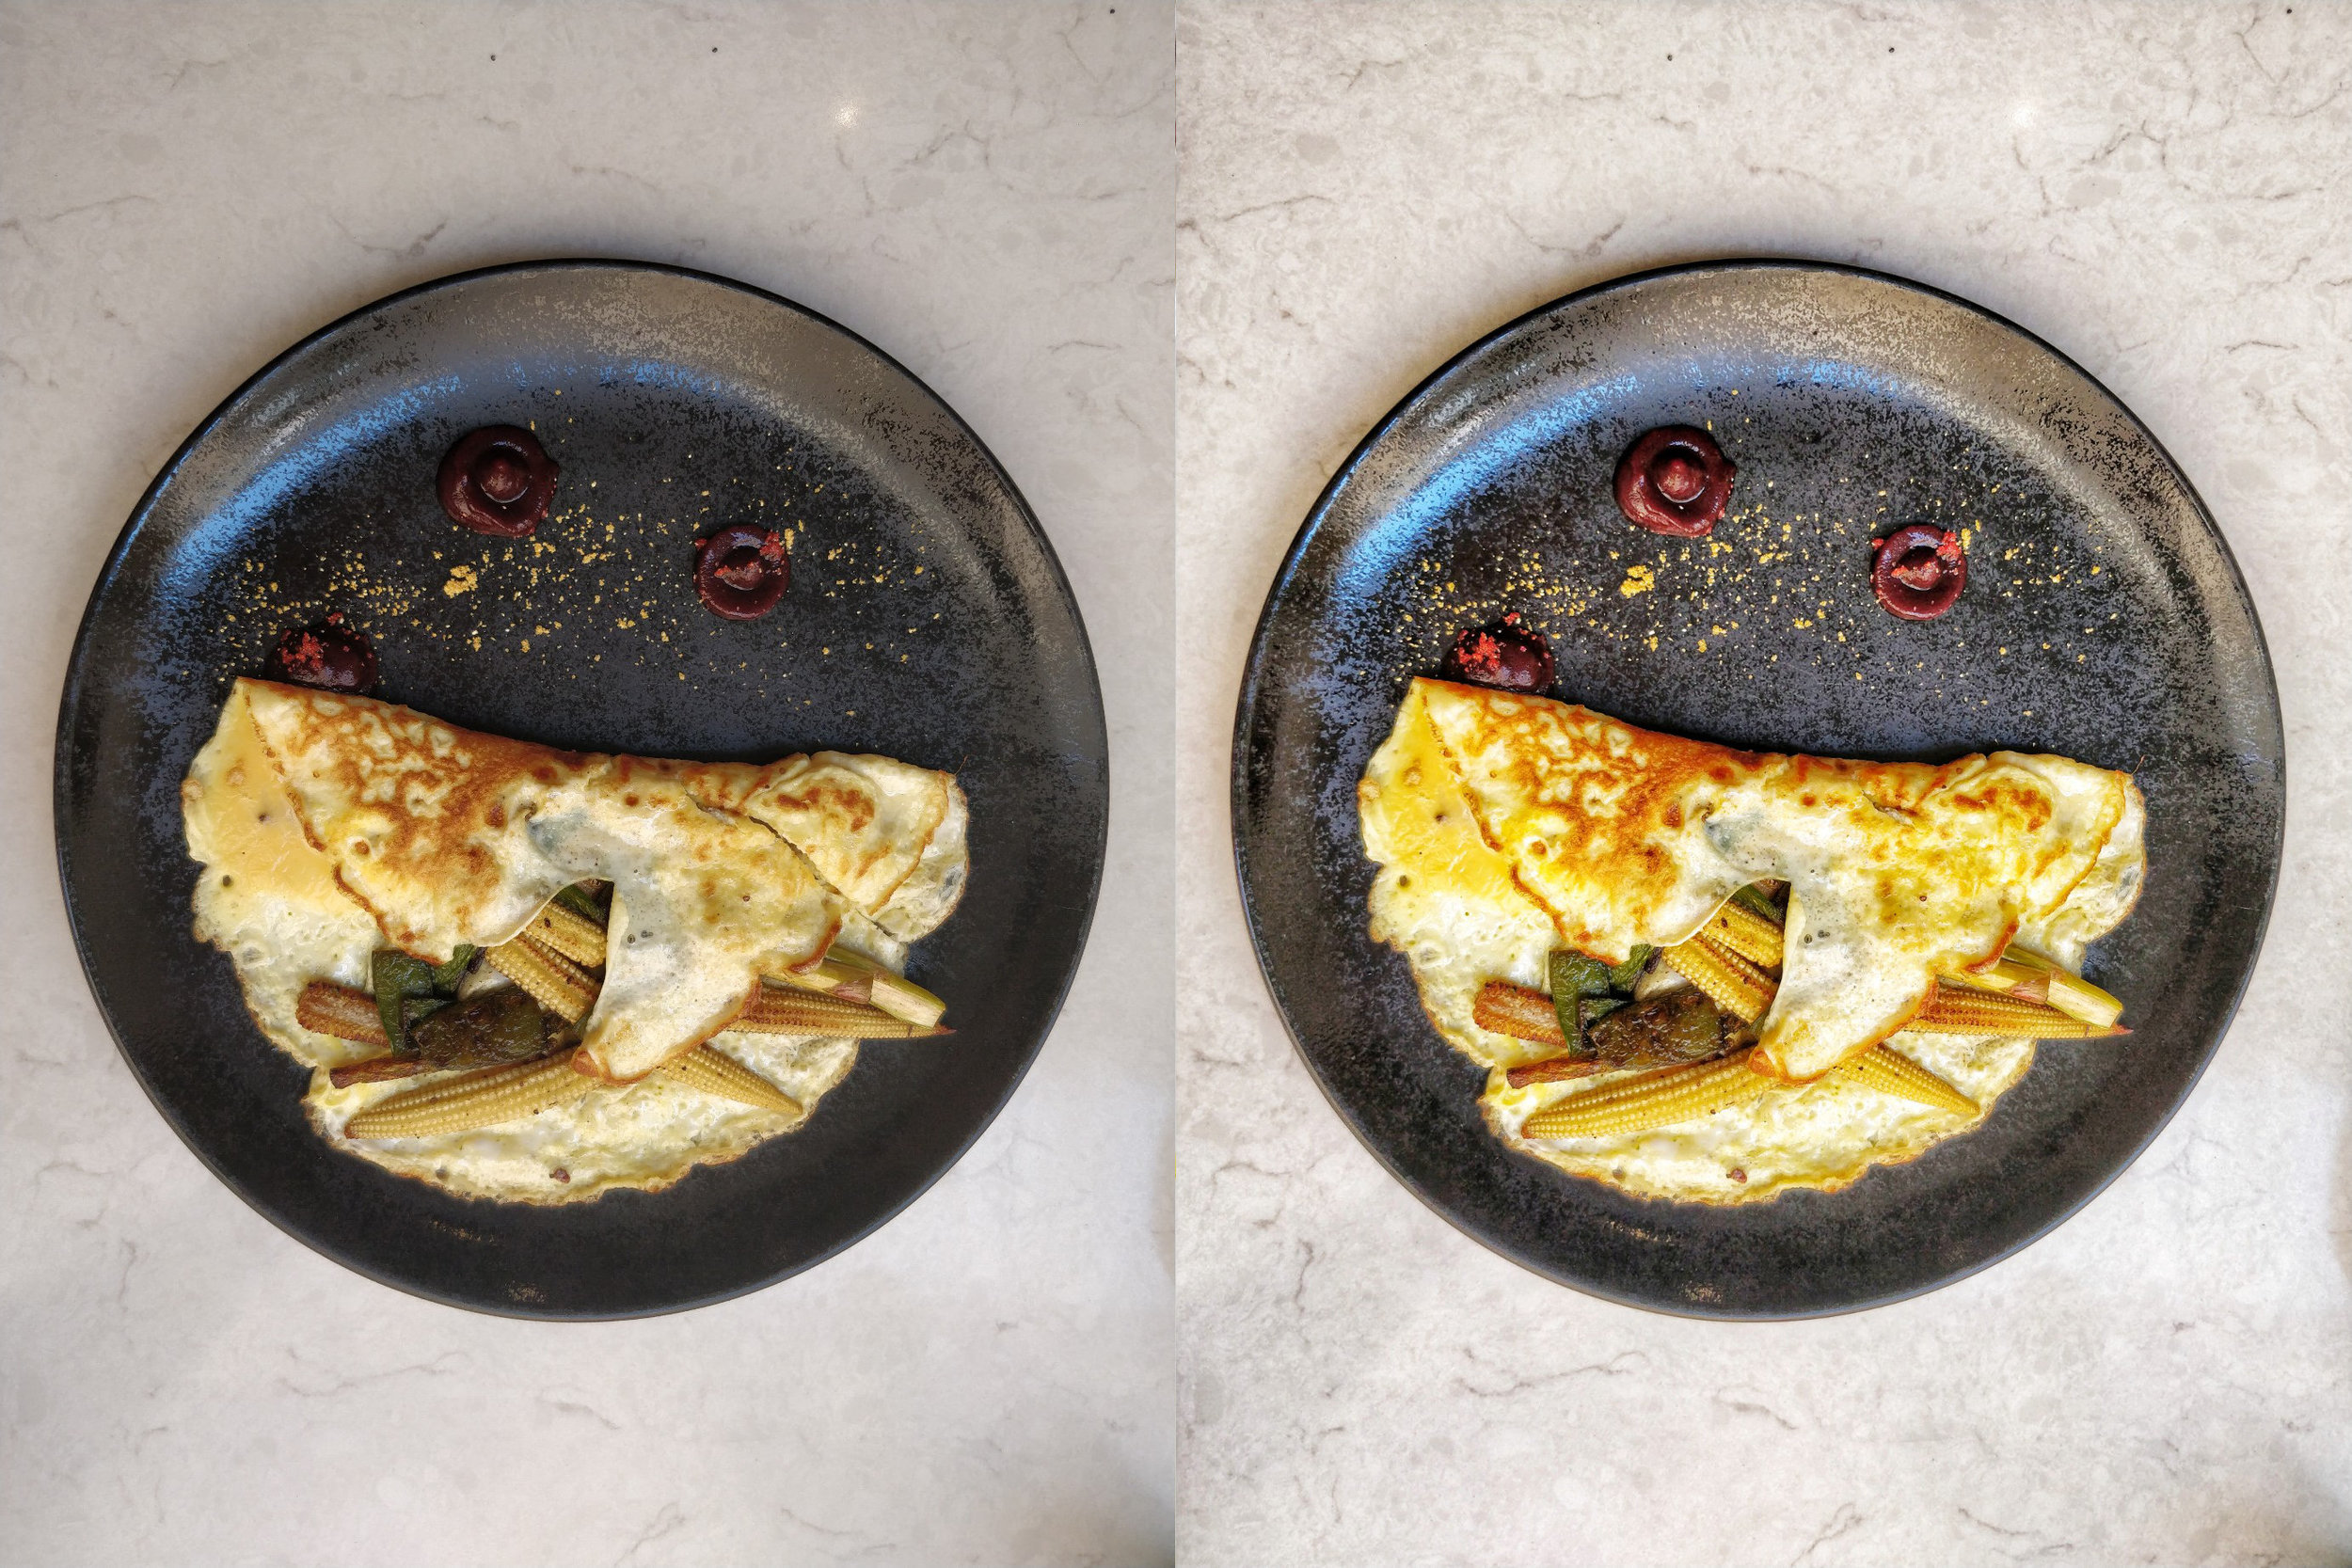 photo-editing-food-before-after-2.jpg